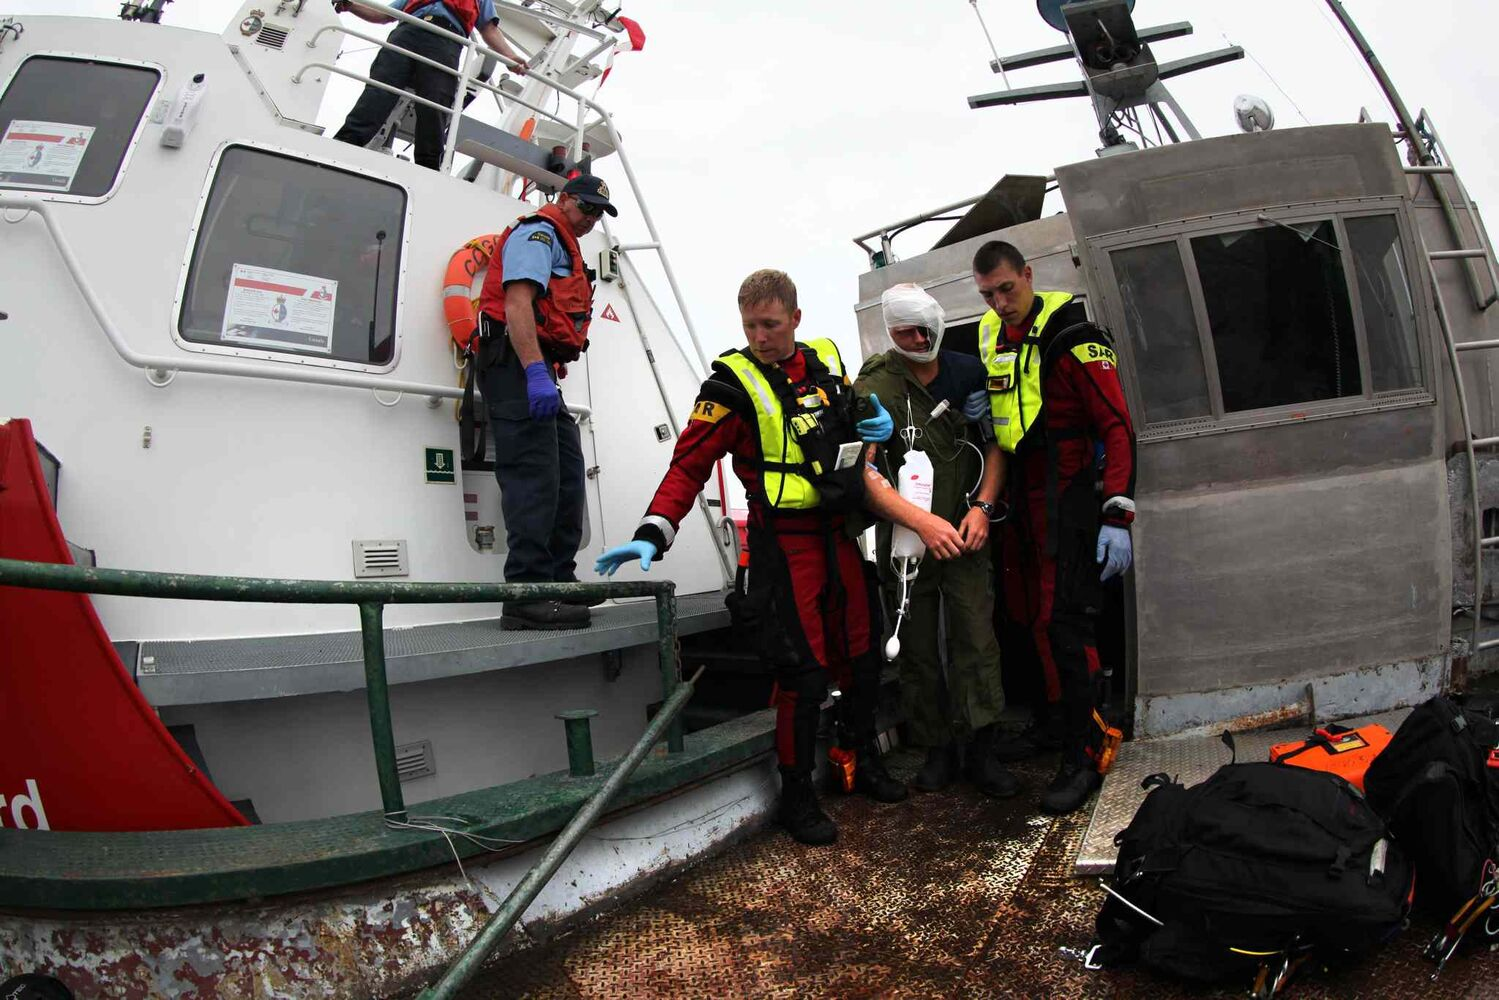 SAR techs help the victim out to the deck of the ship.